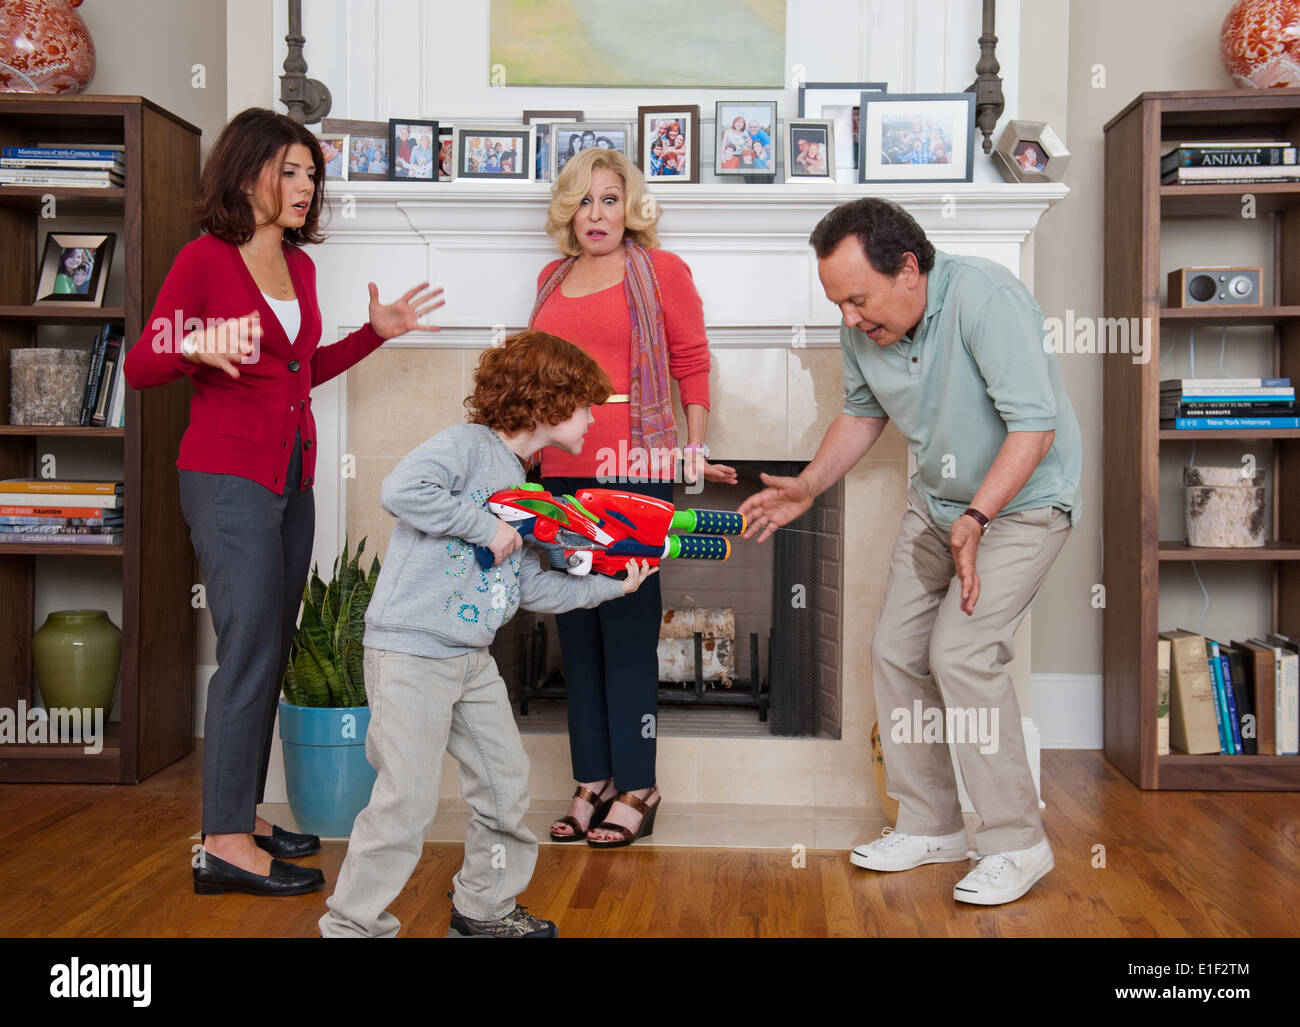 PARENTAL GUIDANCE (2012) MARISA TOMEI KYLE HARRISON BETTER MIDLER BILLY CRYSTAL ANDY FICKMAN (DIR) MOVIESTORE COLLECTION LTD - Stock Image